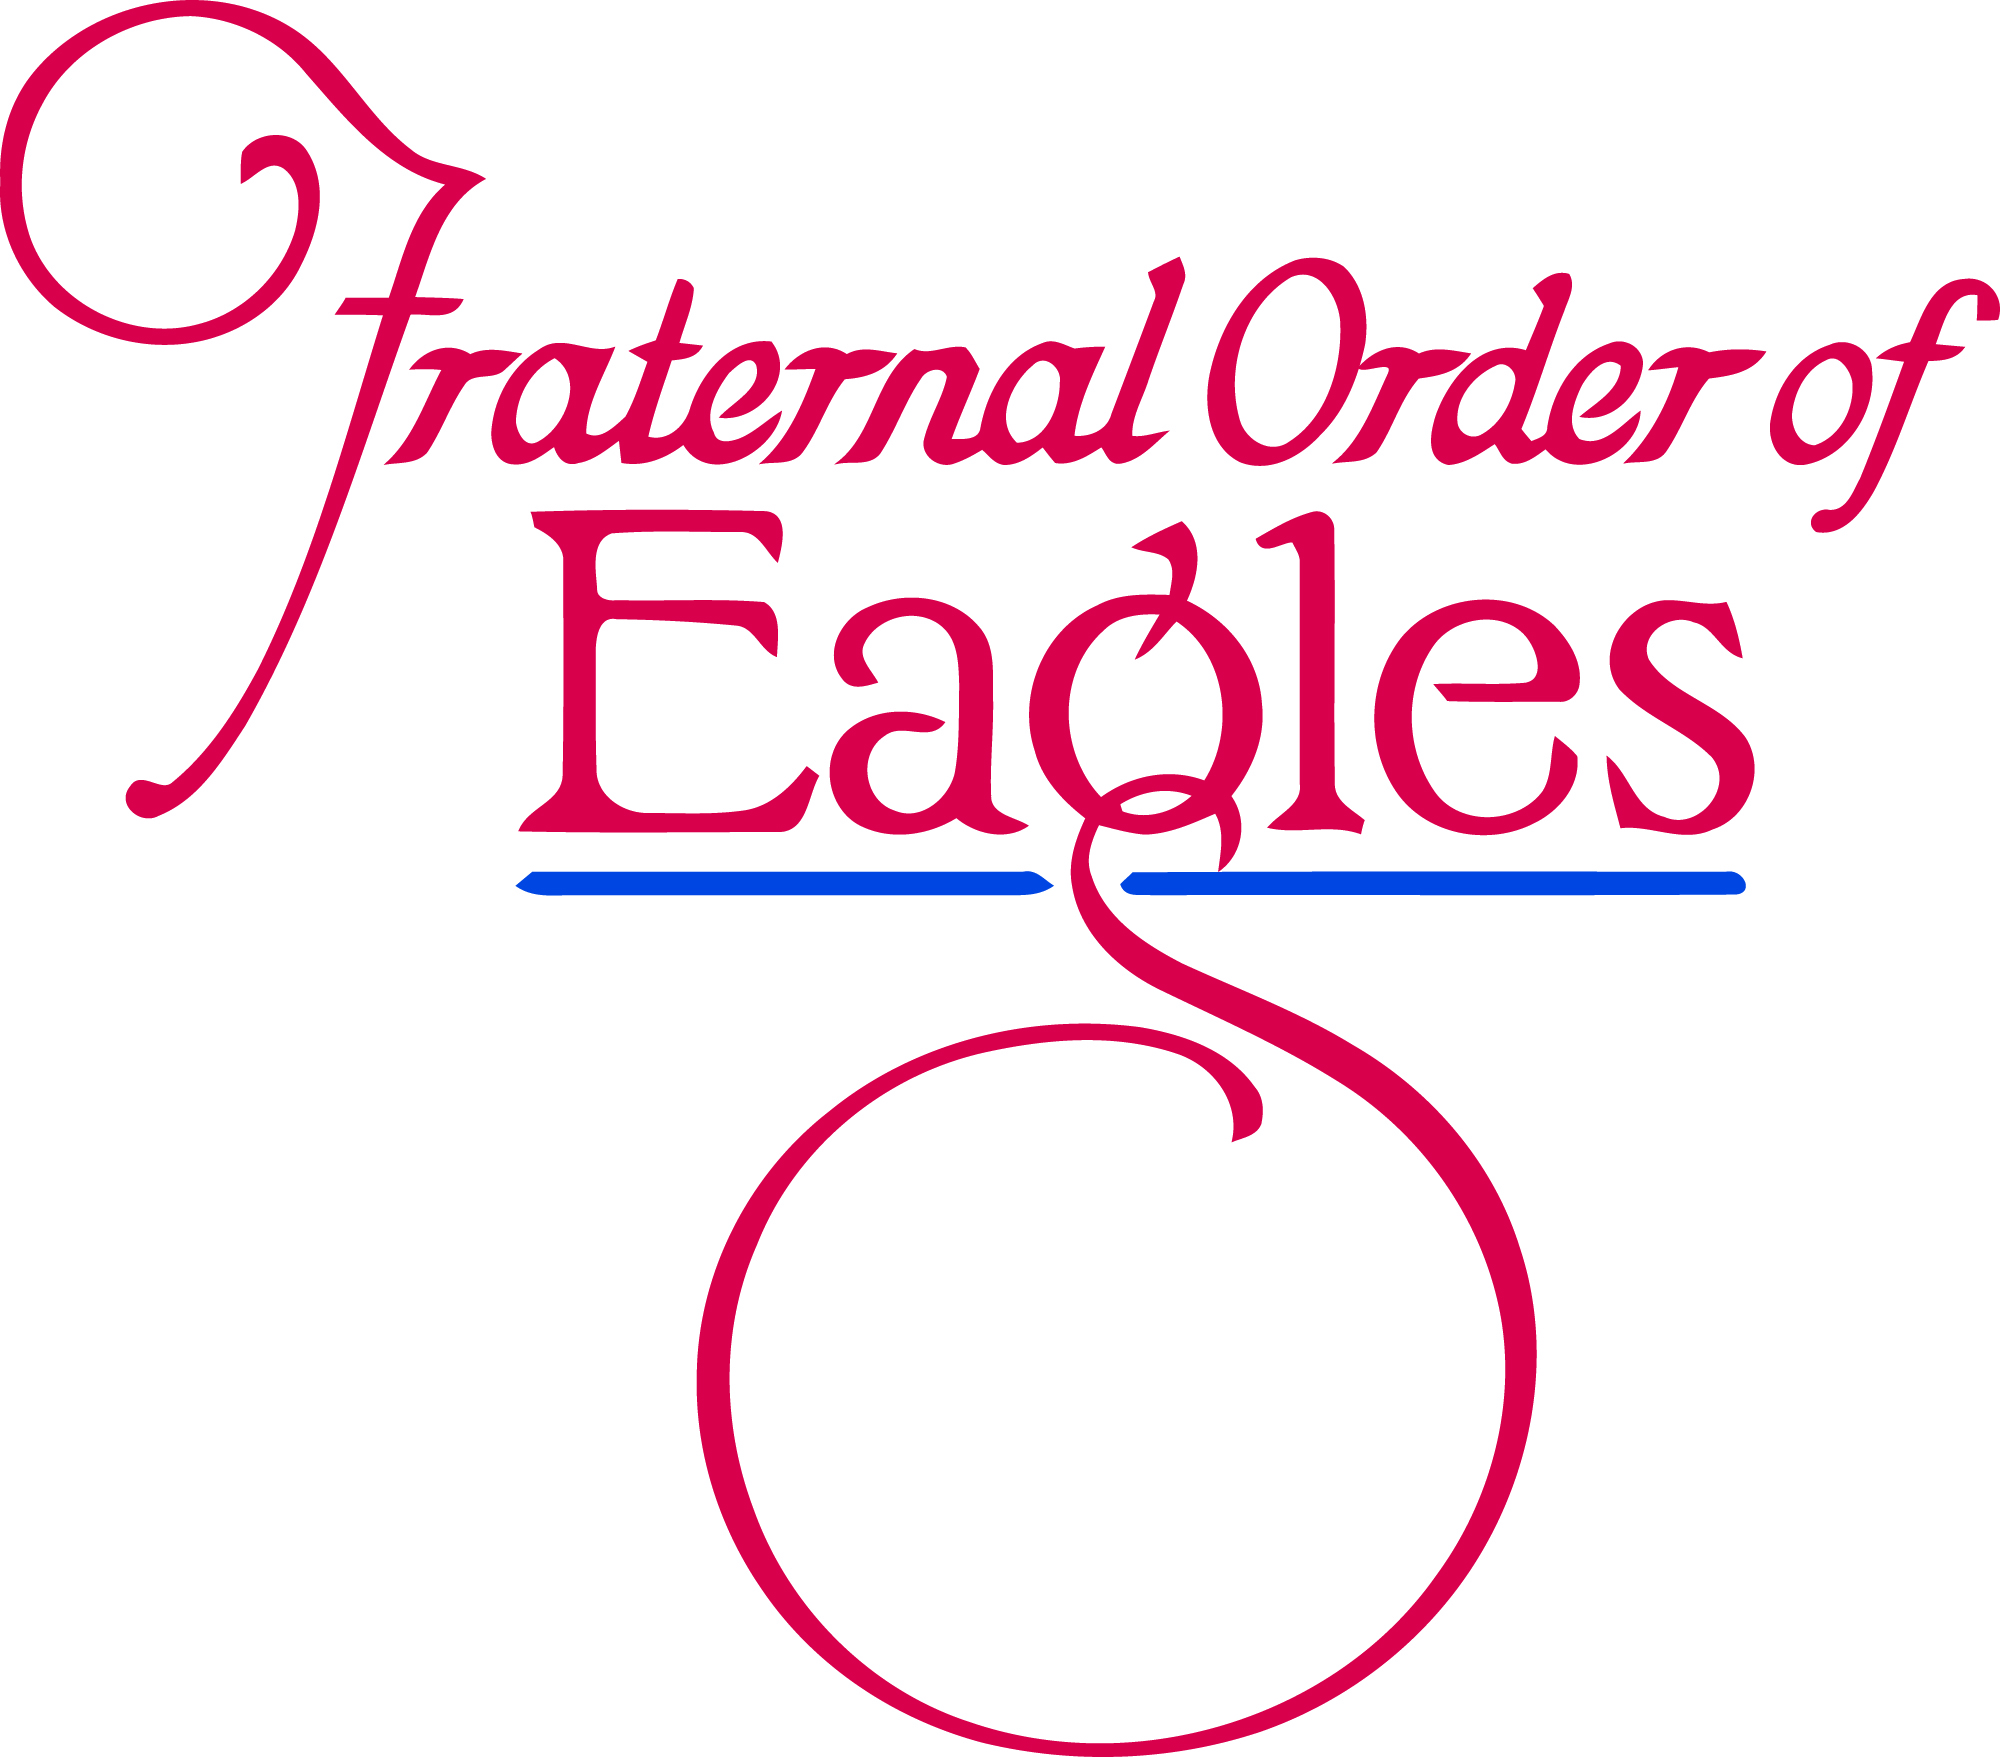 Fraternal Order of Eagles logo.